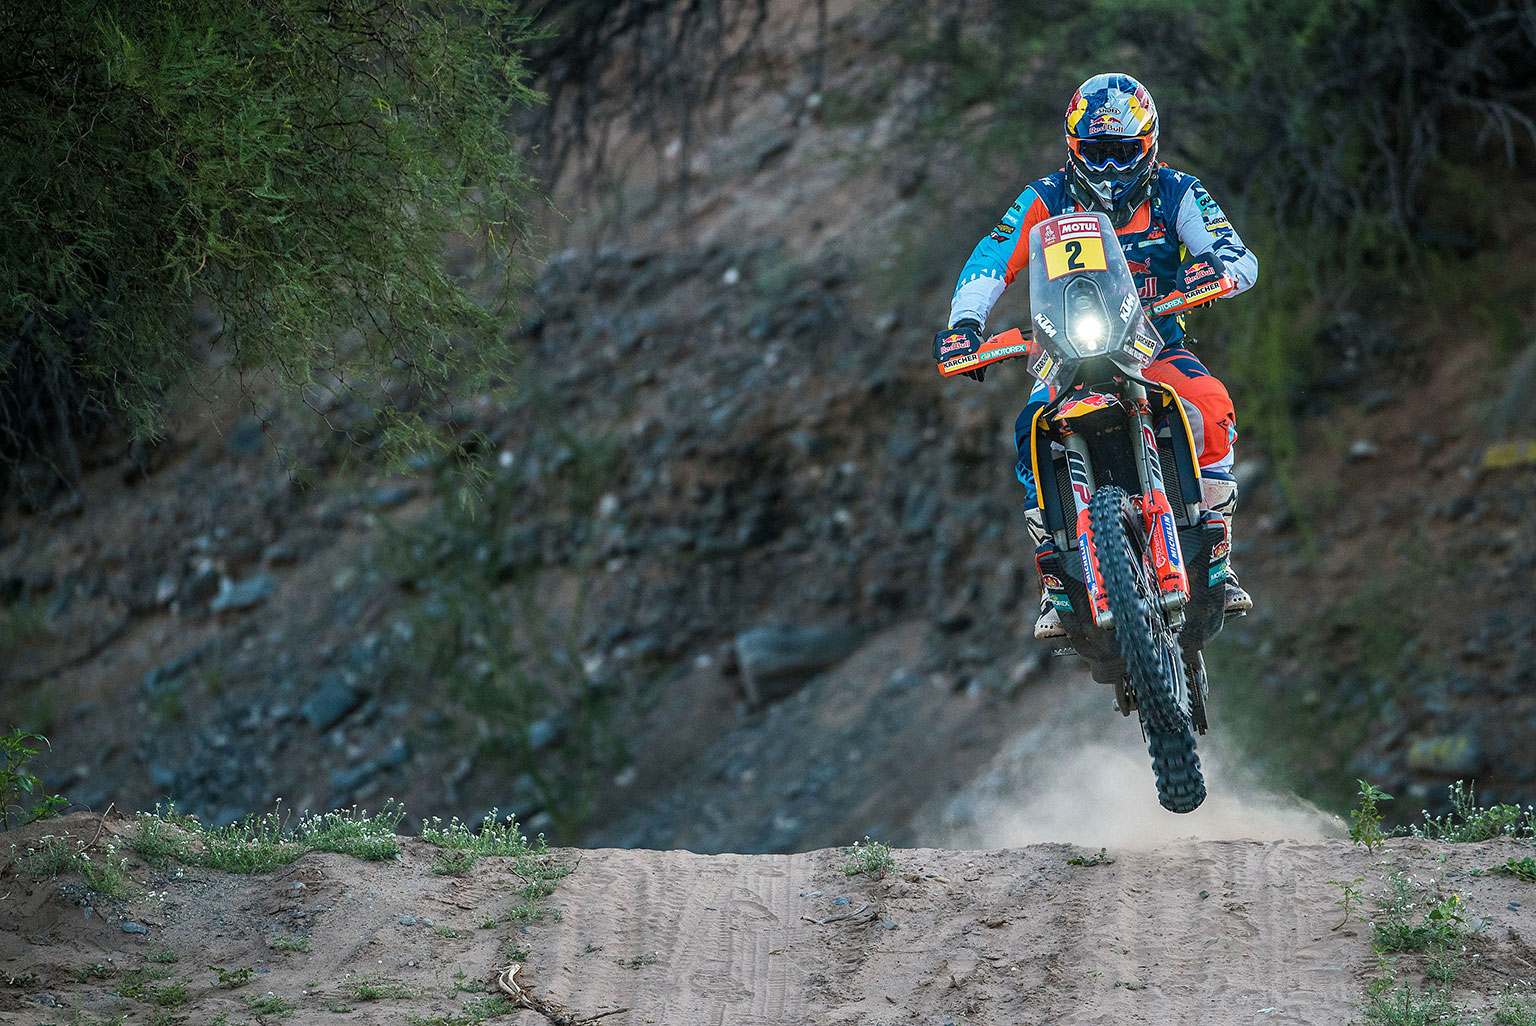 Walkner took his first Dakar win